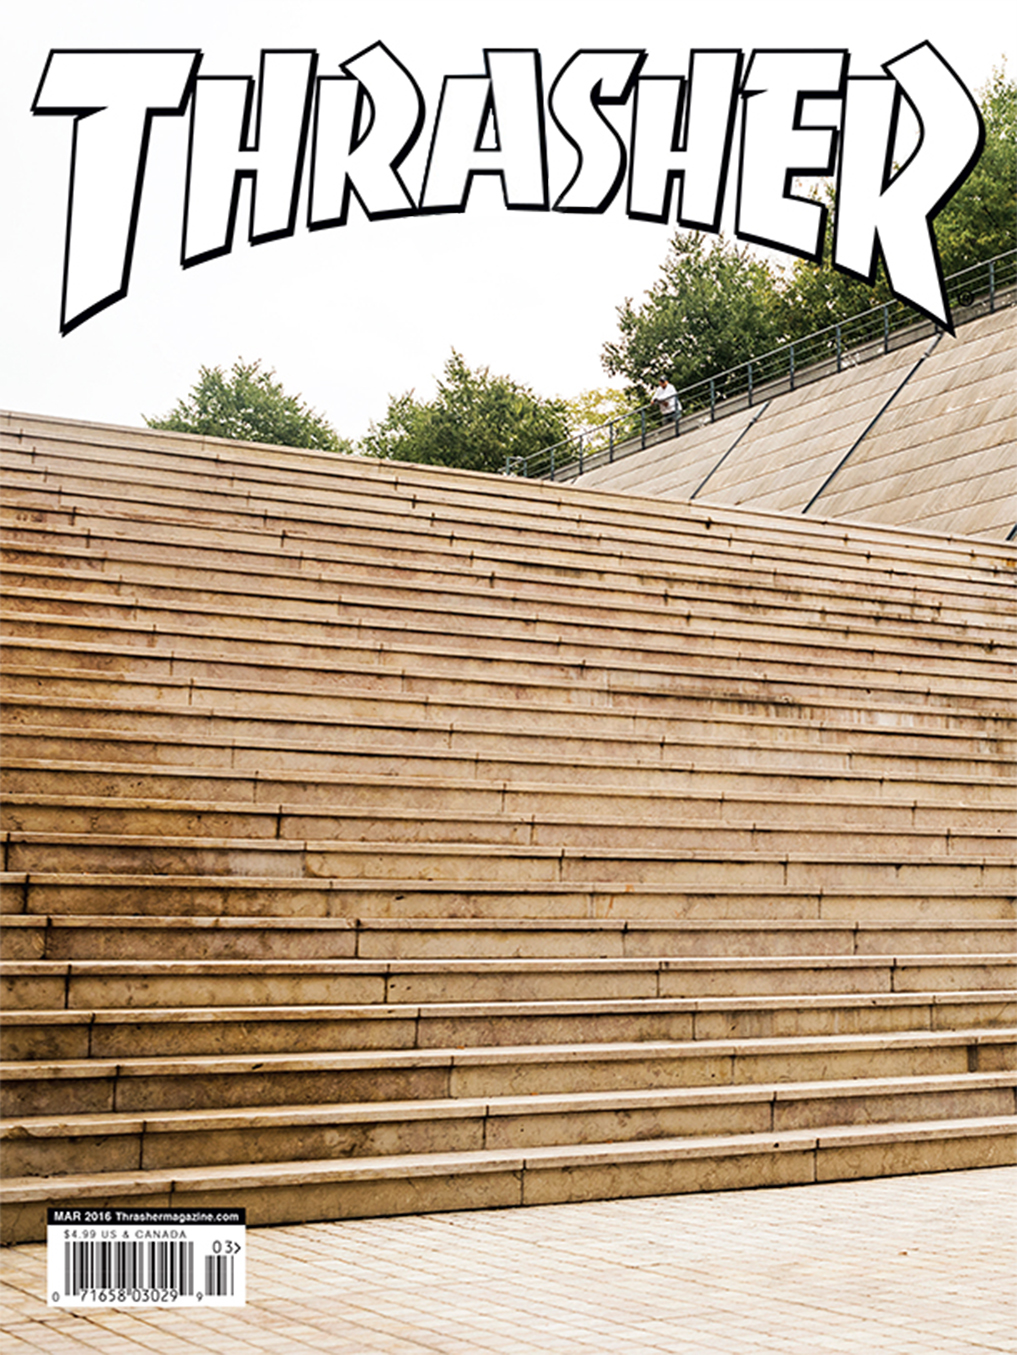 Lonely Thrasher Series (2016)